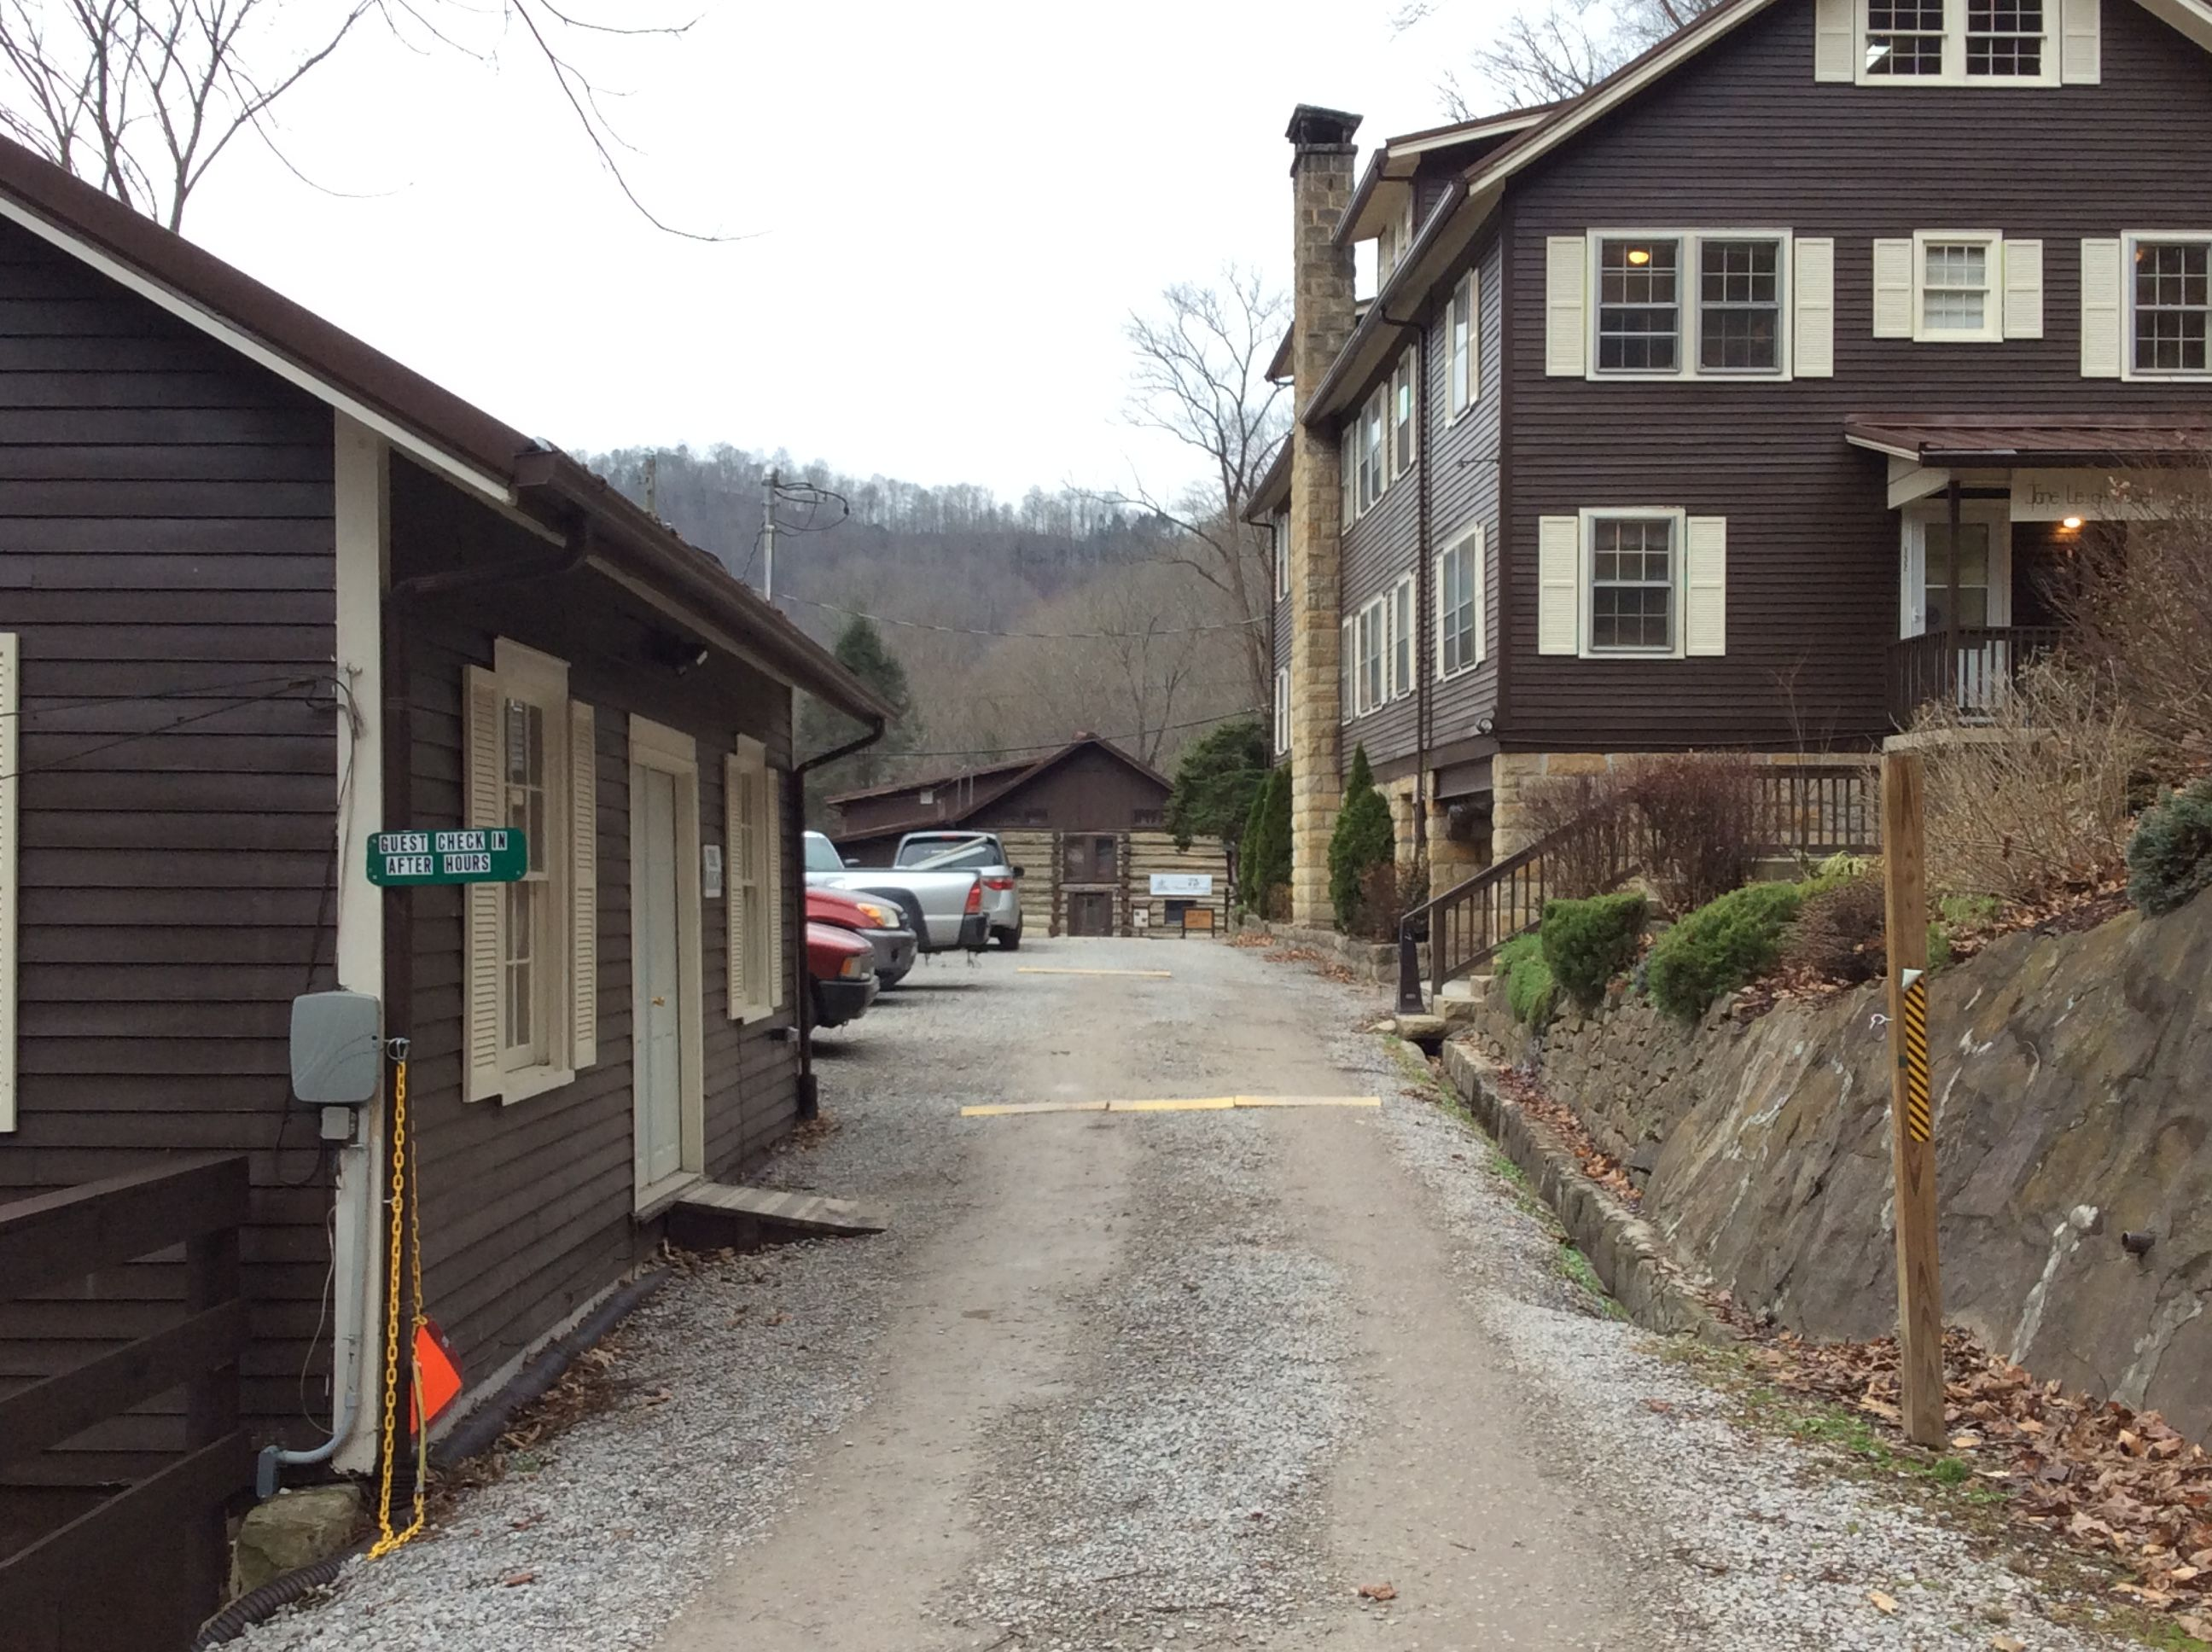 Driveway to FNS complex, Wendover, KY, 2014, Photo by Brad